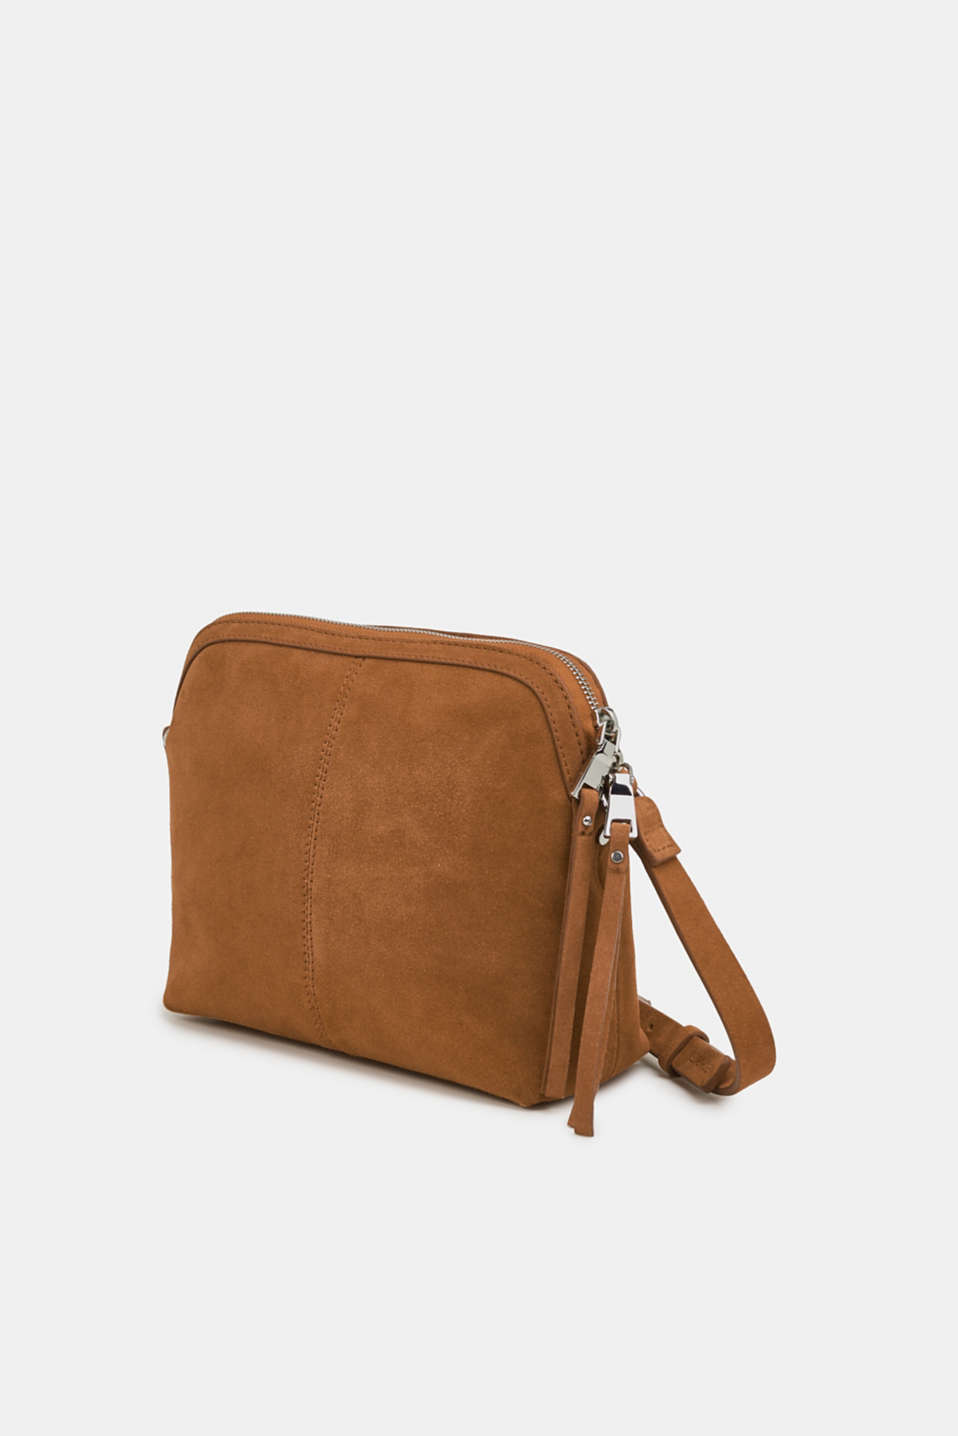 Suede shoulder bag, RUST BROWN, detail image number 4